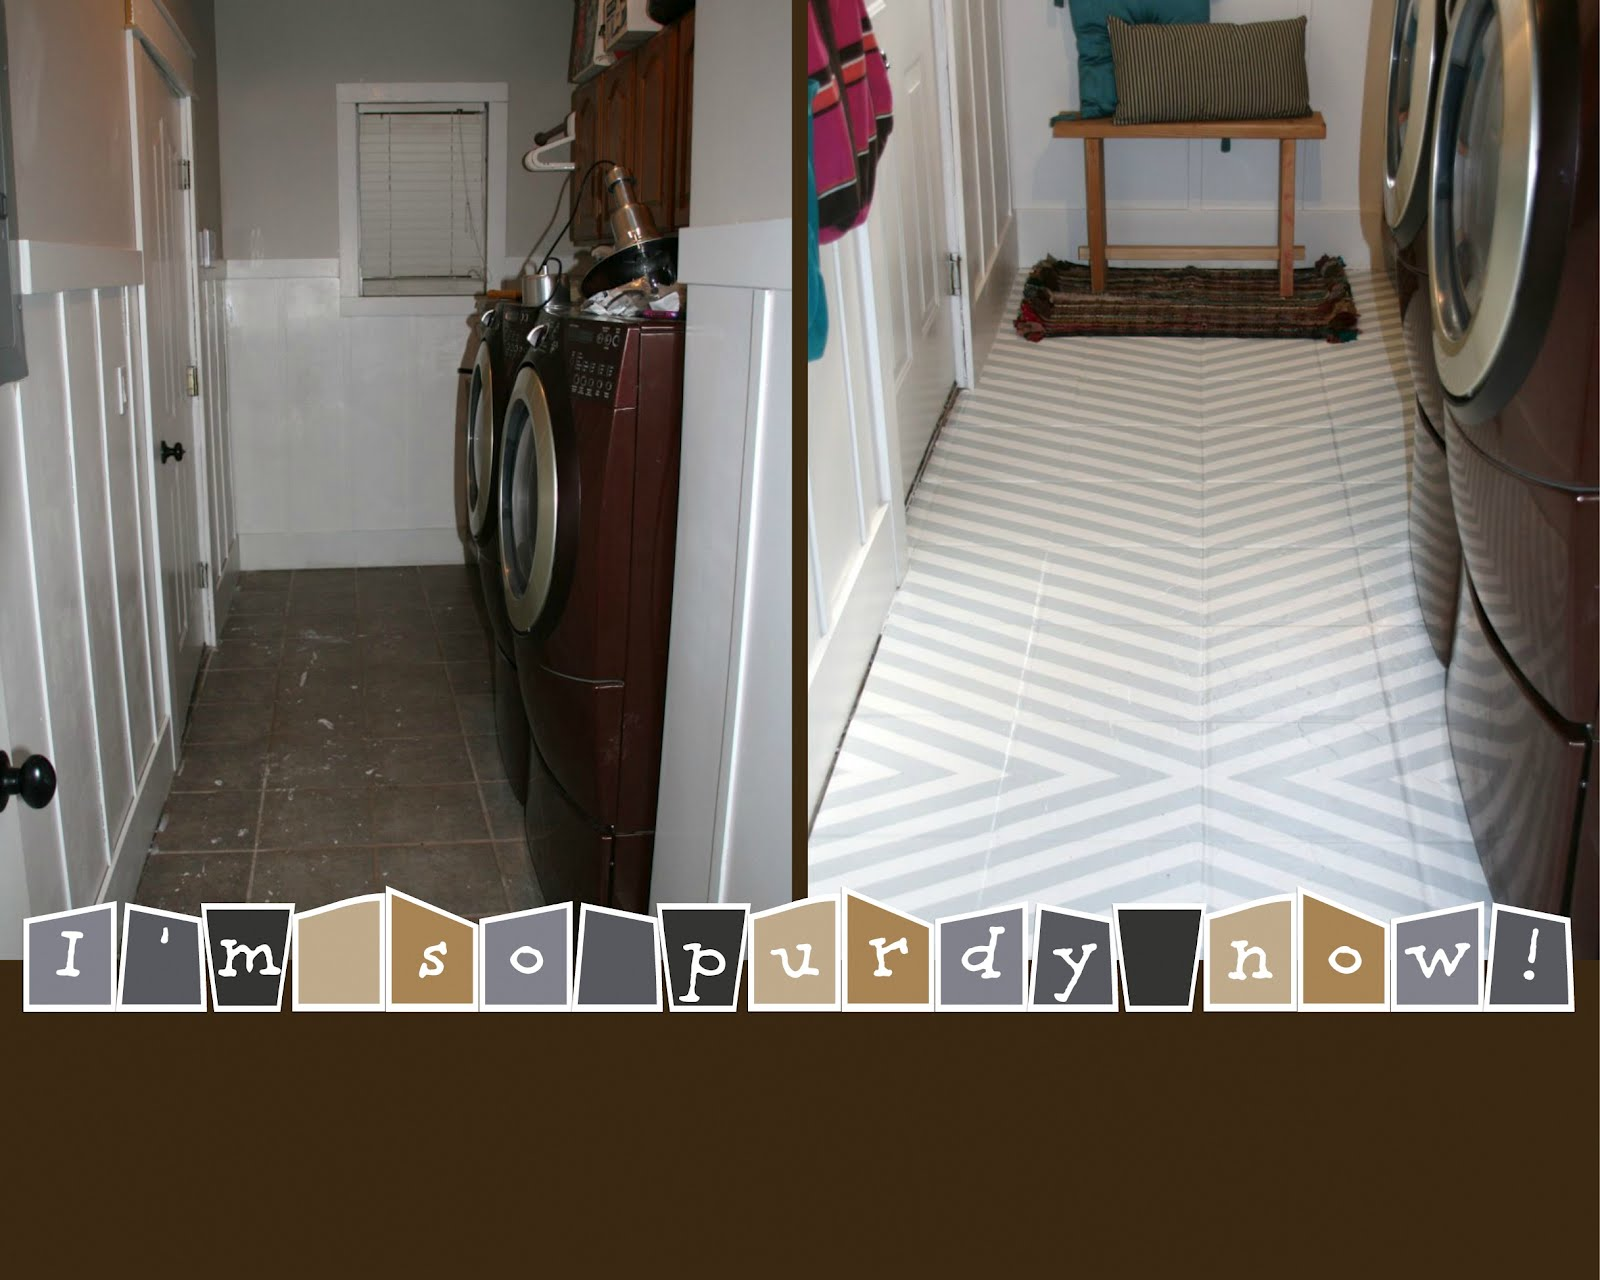 How to paint tile floors a tutorial love stitched not too shabby for a flippin awesome floor heres the breakdown gripper primer 23 2 gallons of behr brand epoxy paint dailygadgetfo Choice Image